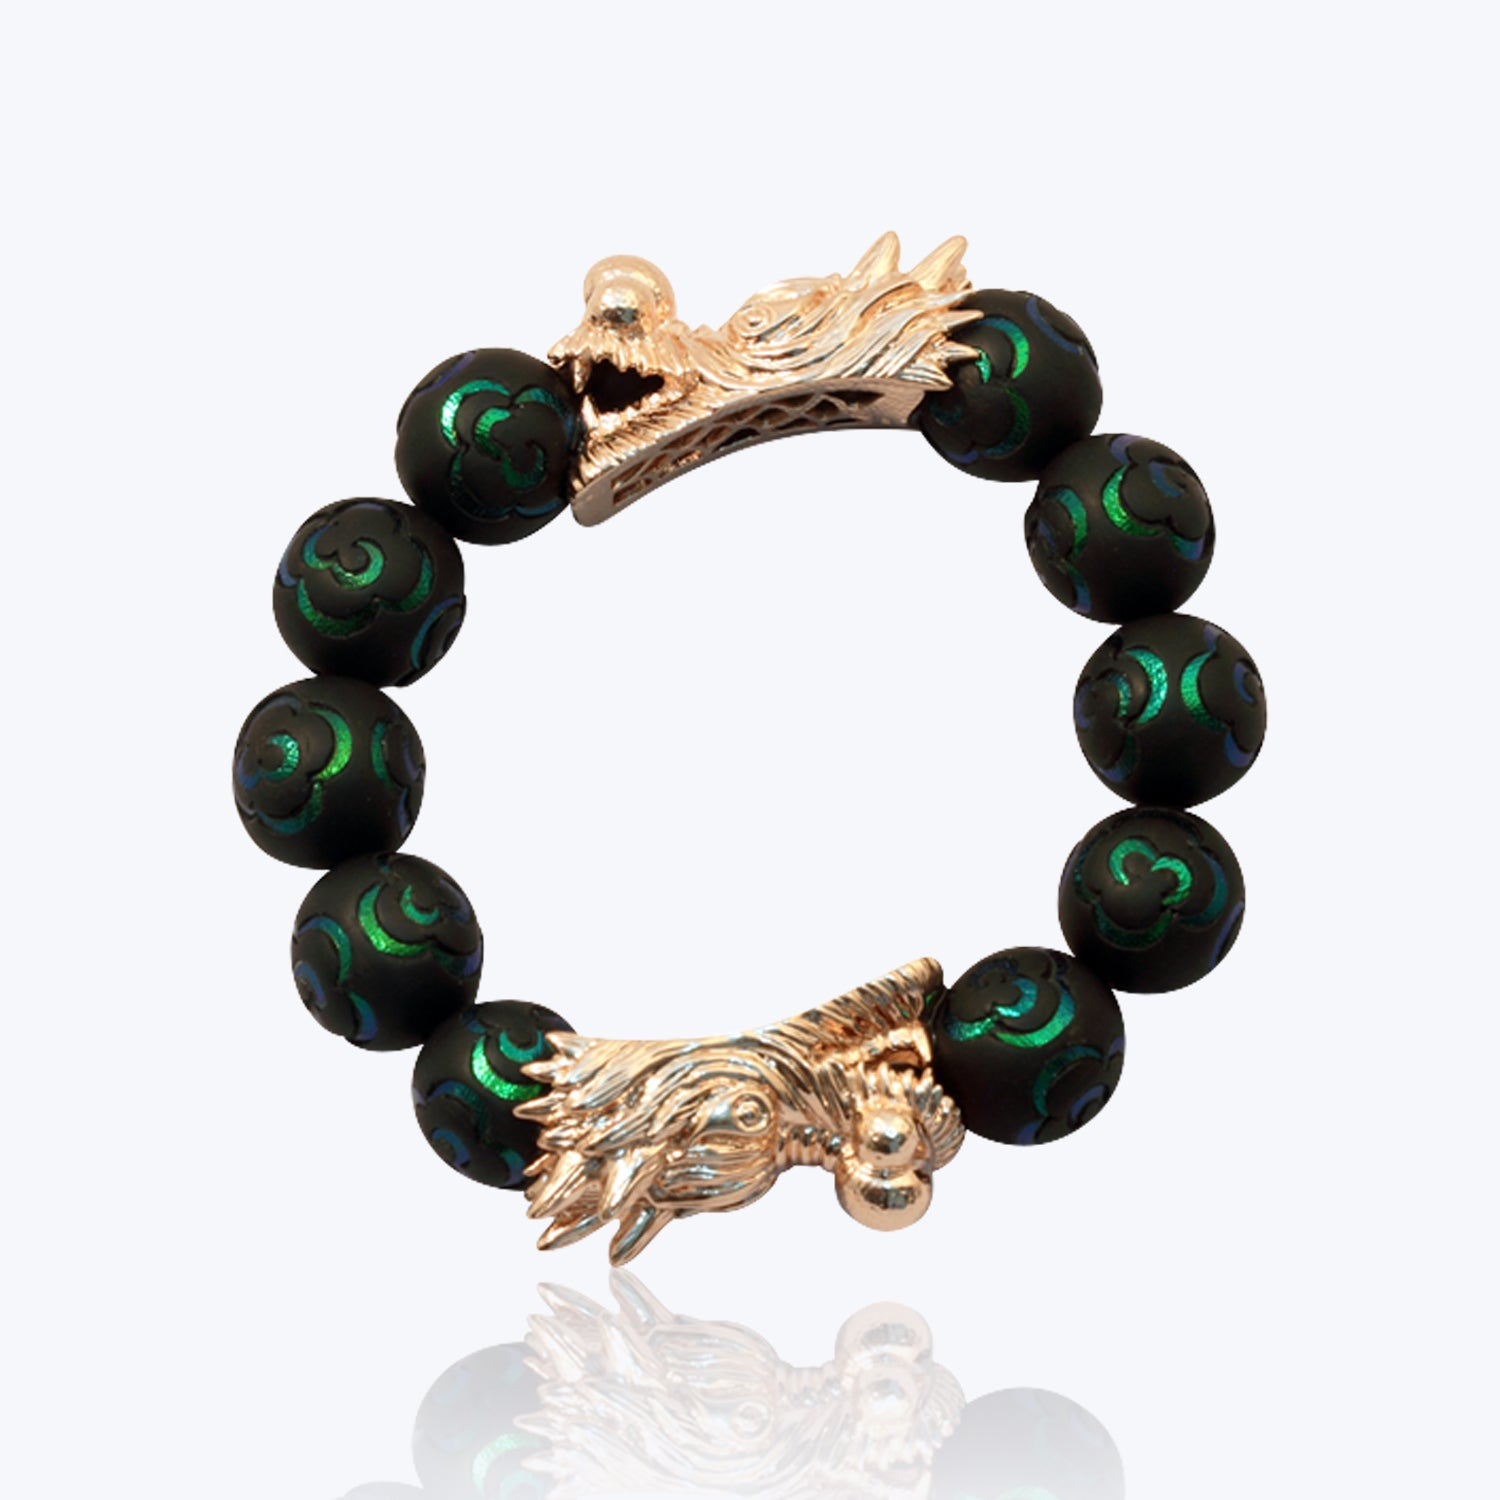 2 Dragon Heads Bracelet with Scarab